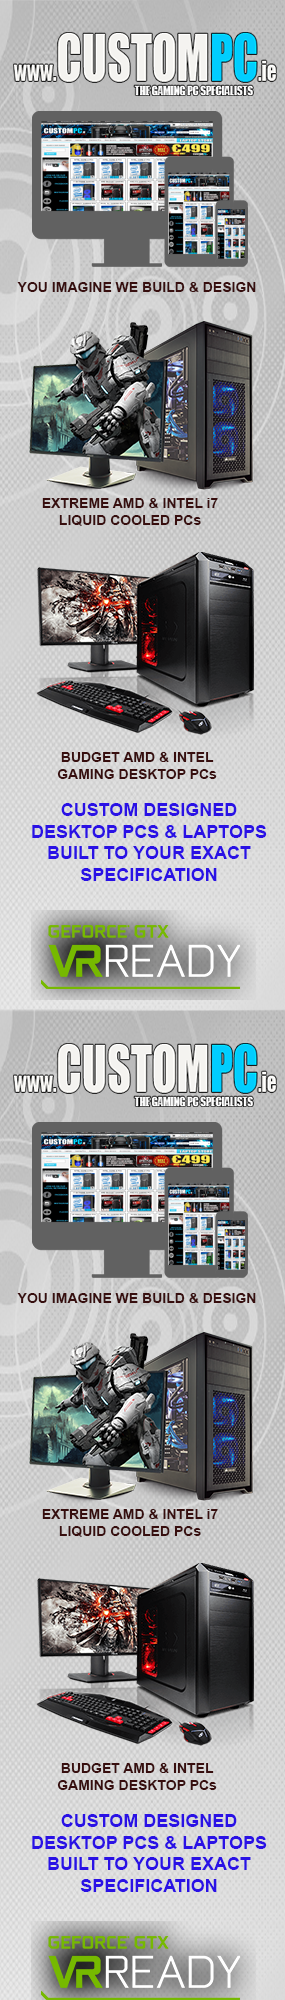 www.CUSTOMPC.ie IRELANDs GAMING PC SPECIALISTS